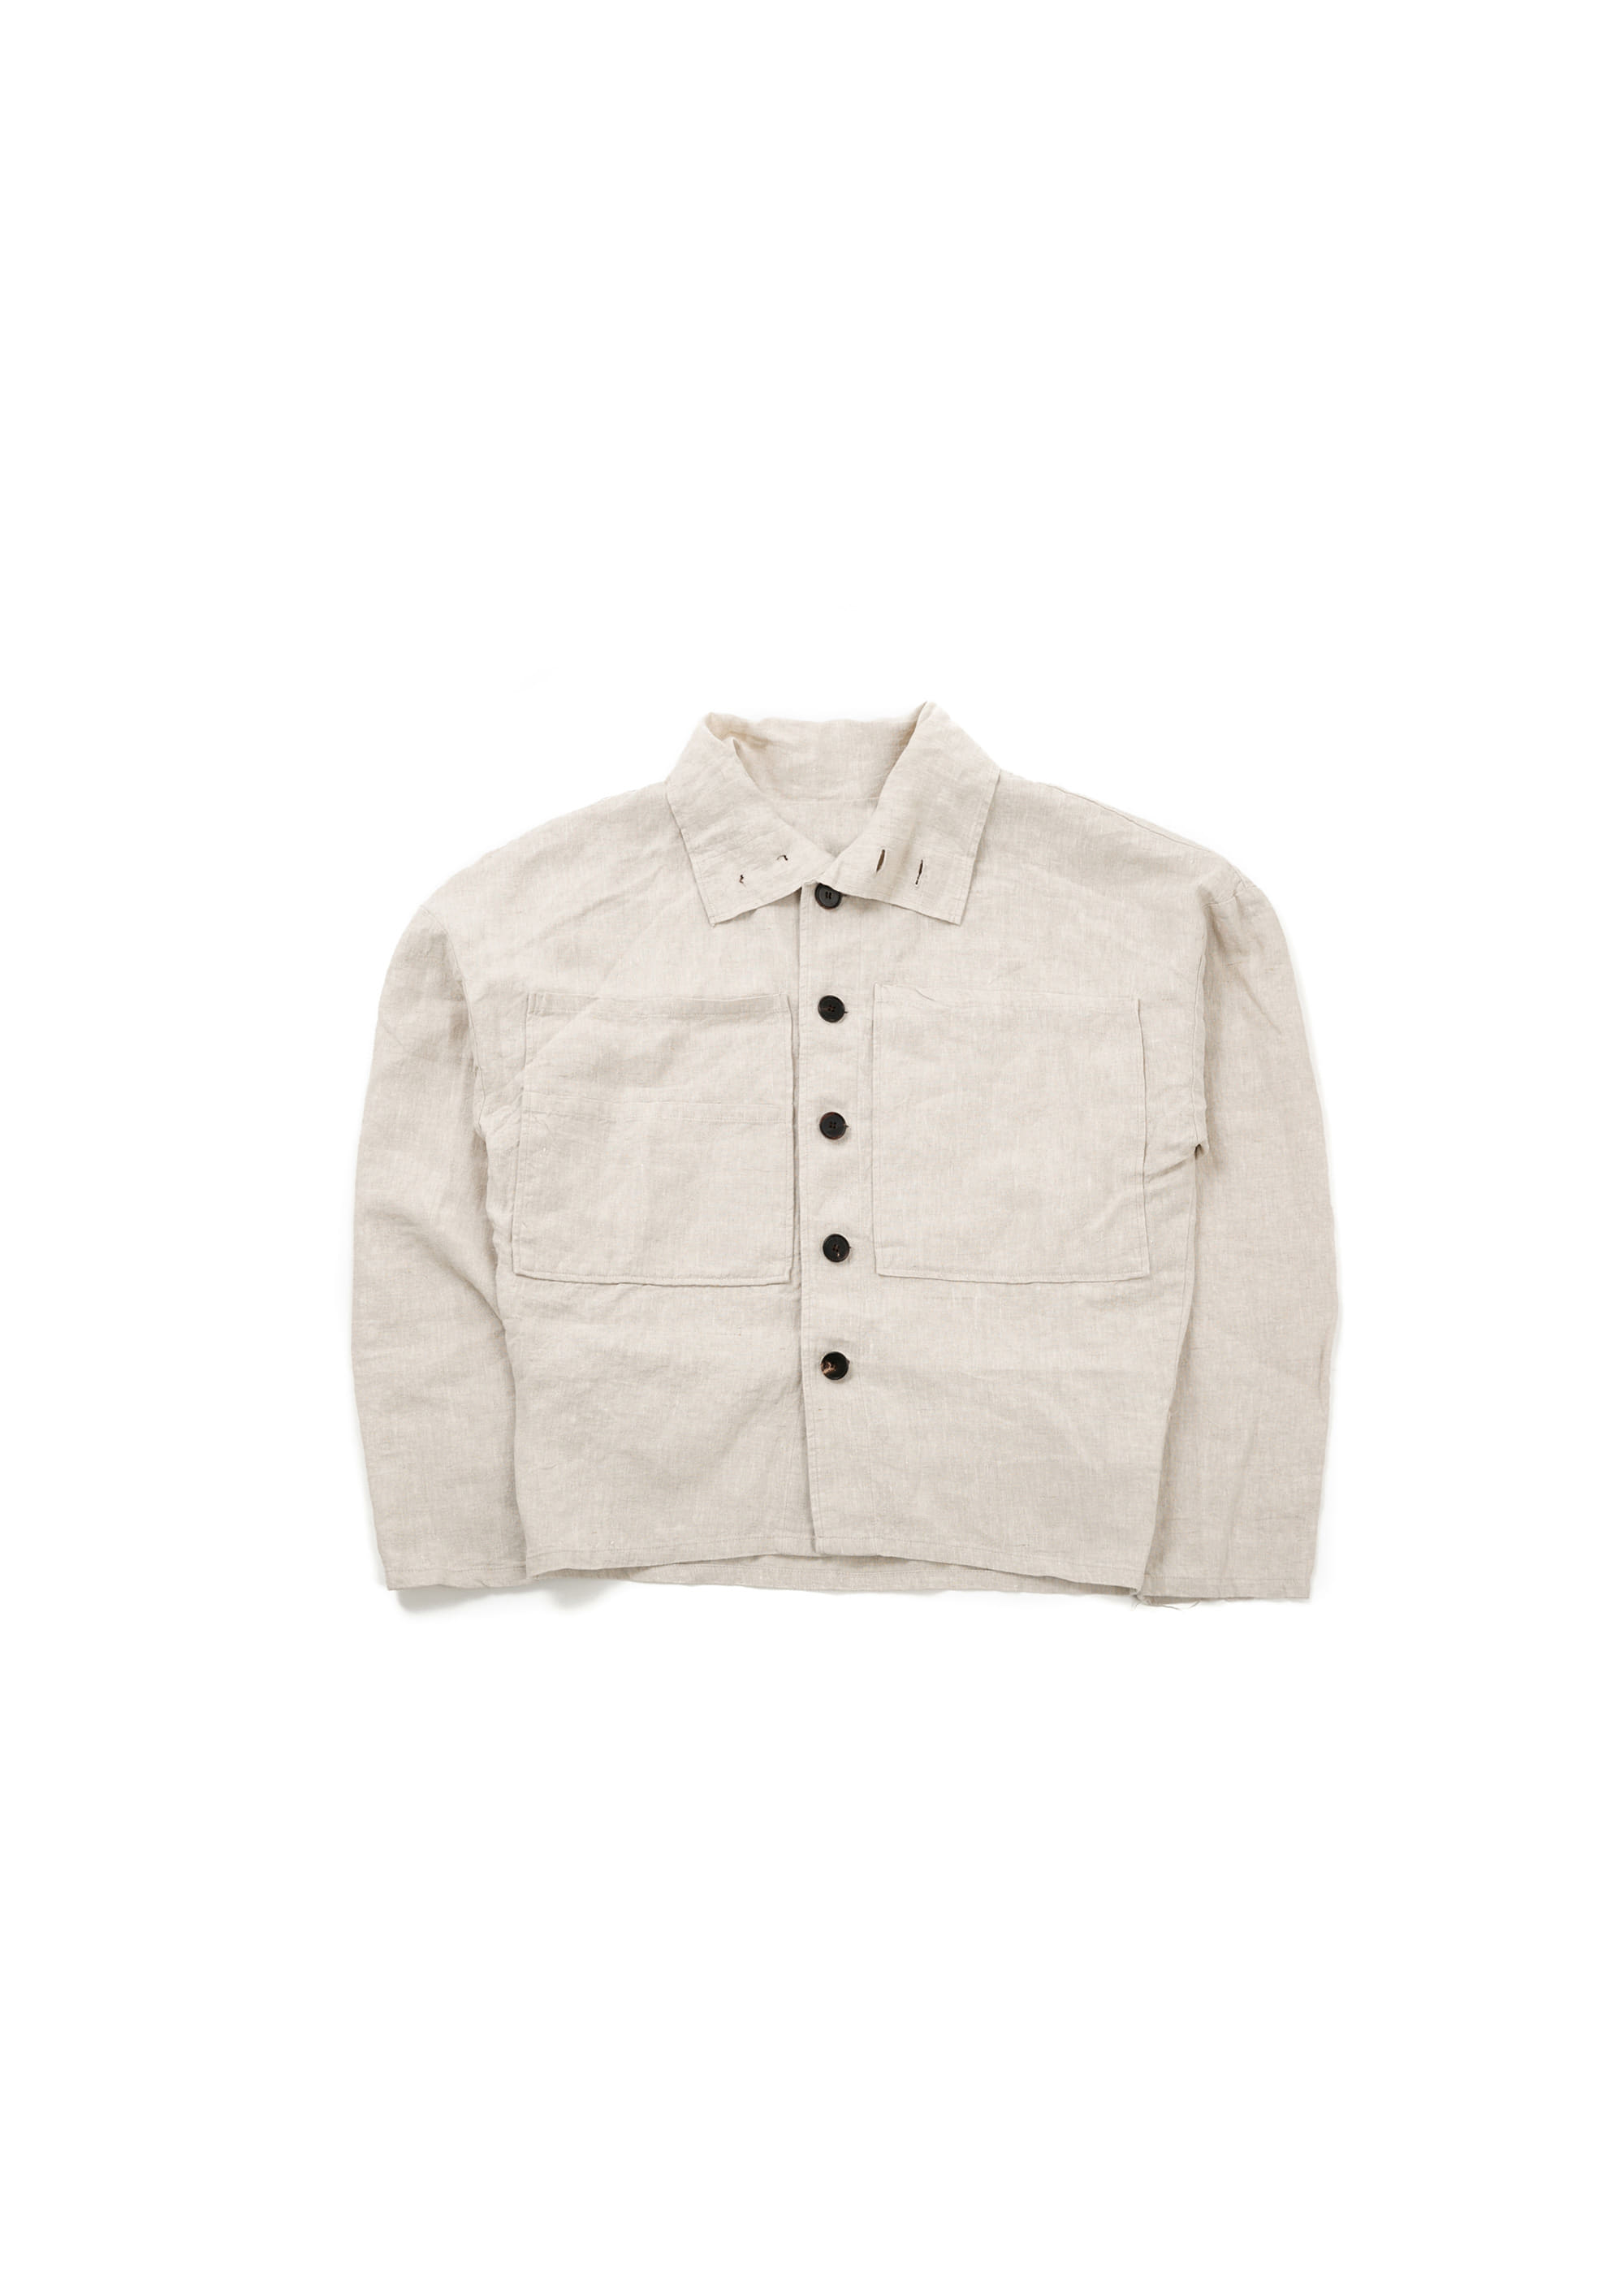 Linen Big High Neck Jacket - Beige